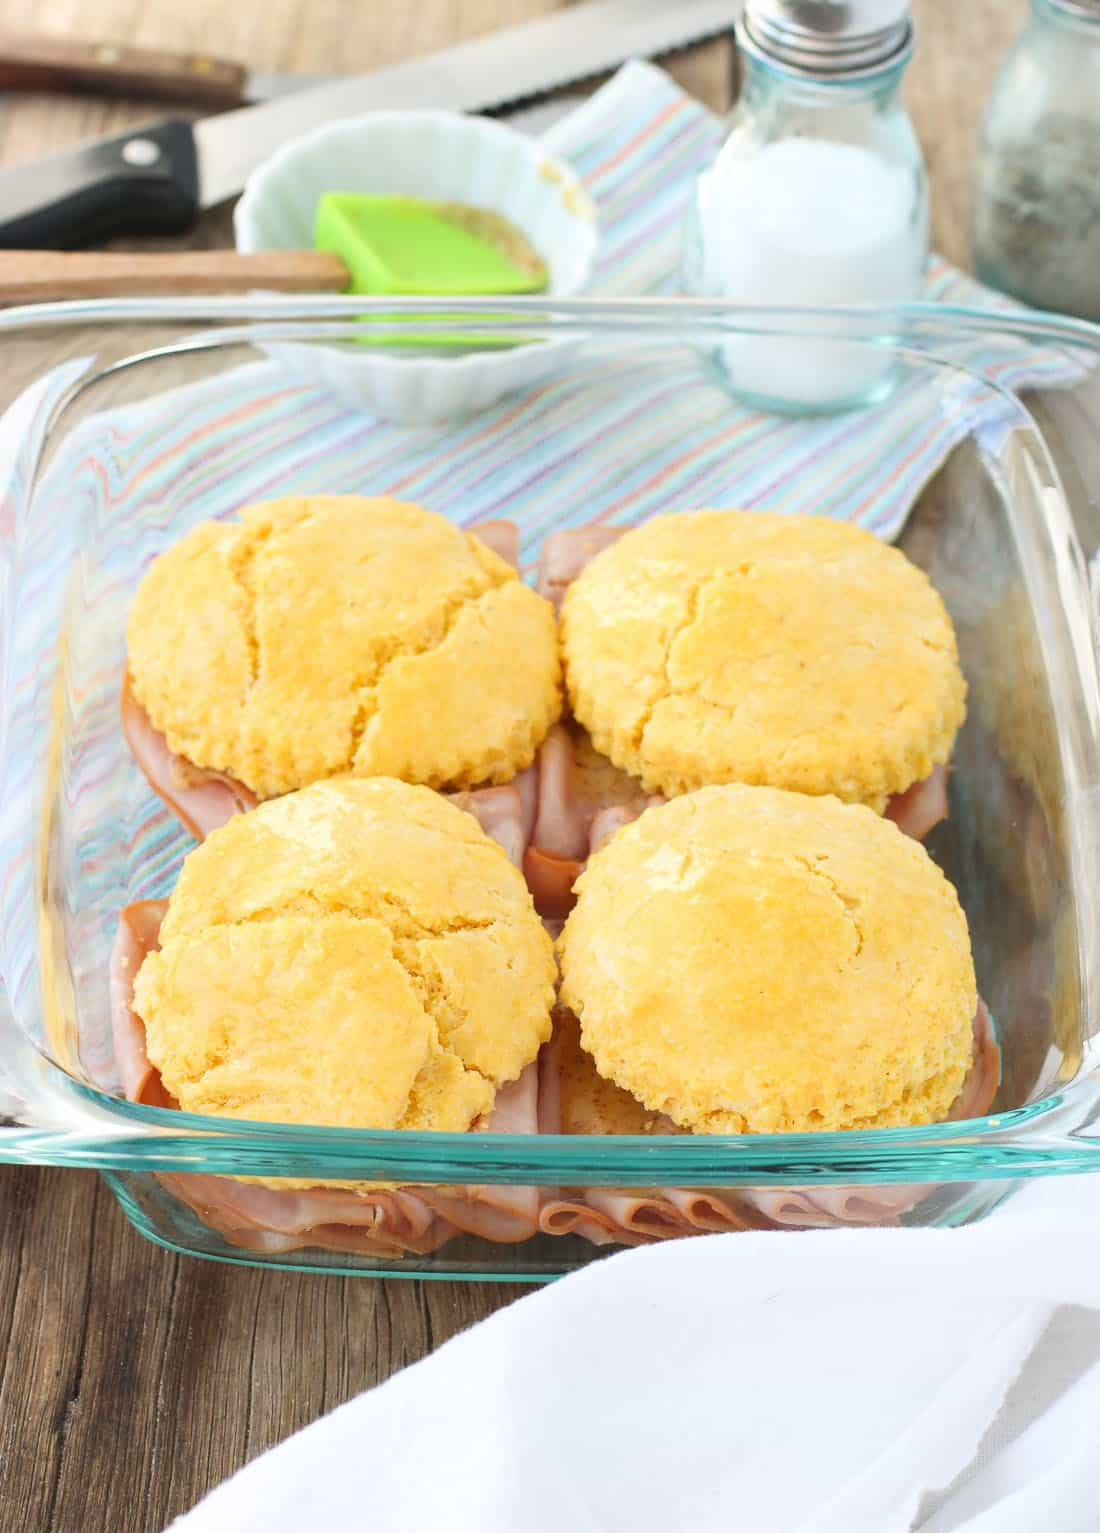 Cornmeal is added to a fluffy biscuit recipe and topped with applewood smoked ham and creamy mustard sauce. These cornmeal biscuit ham sandwiches with honey mustard sauce make a delicious breakfast, brunch, or anytime meal!